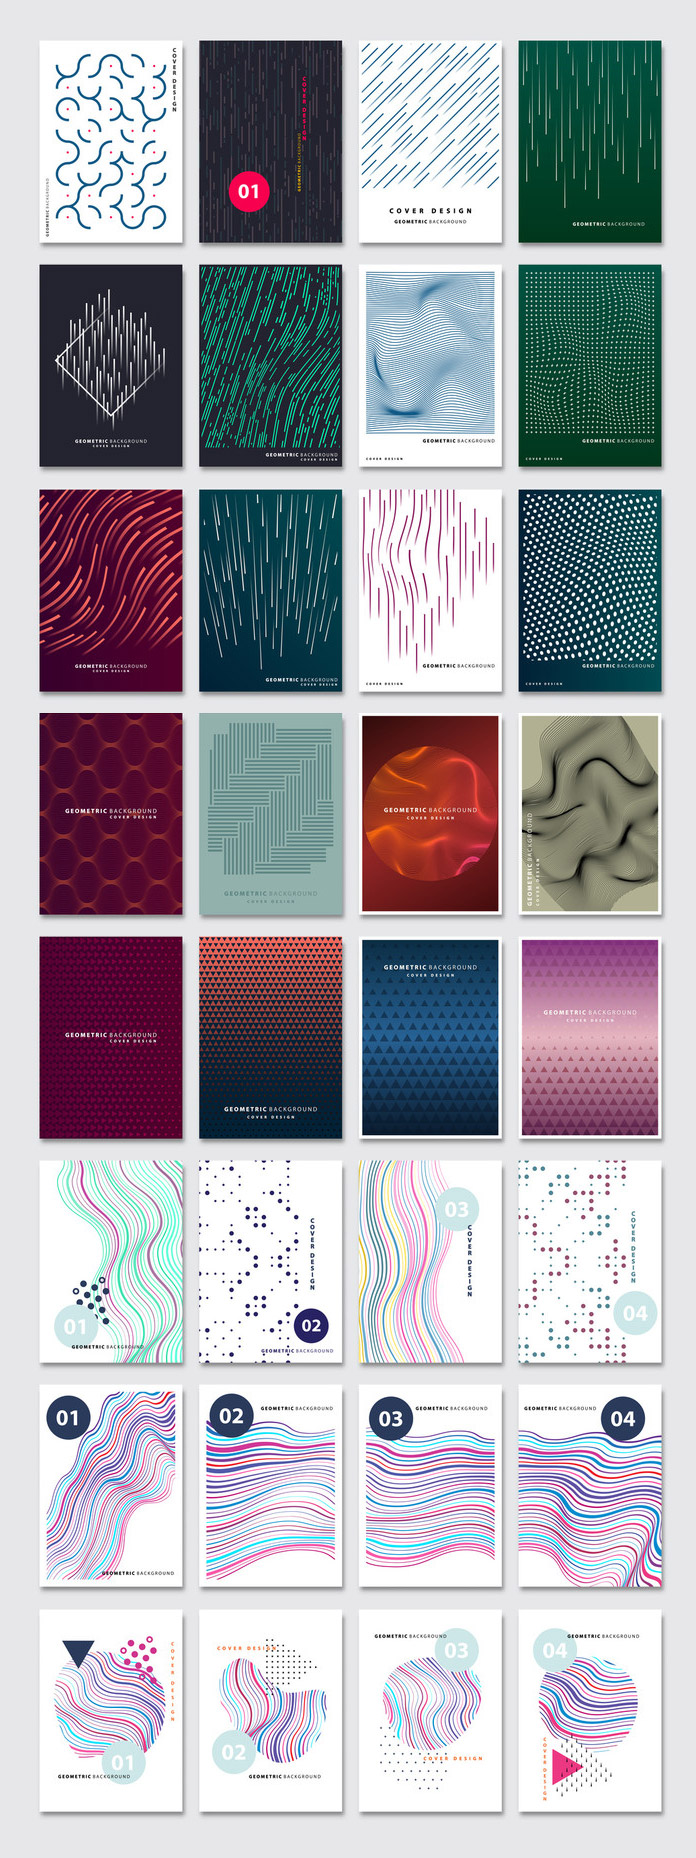 Abstract Geometric Vector Graphic Design Templates